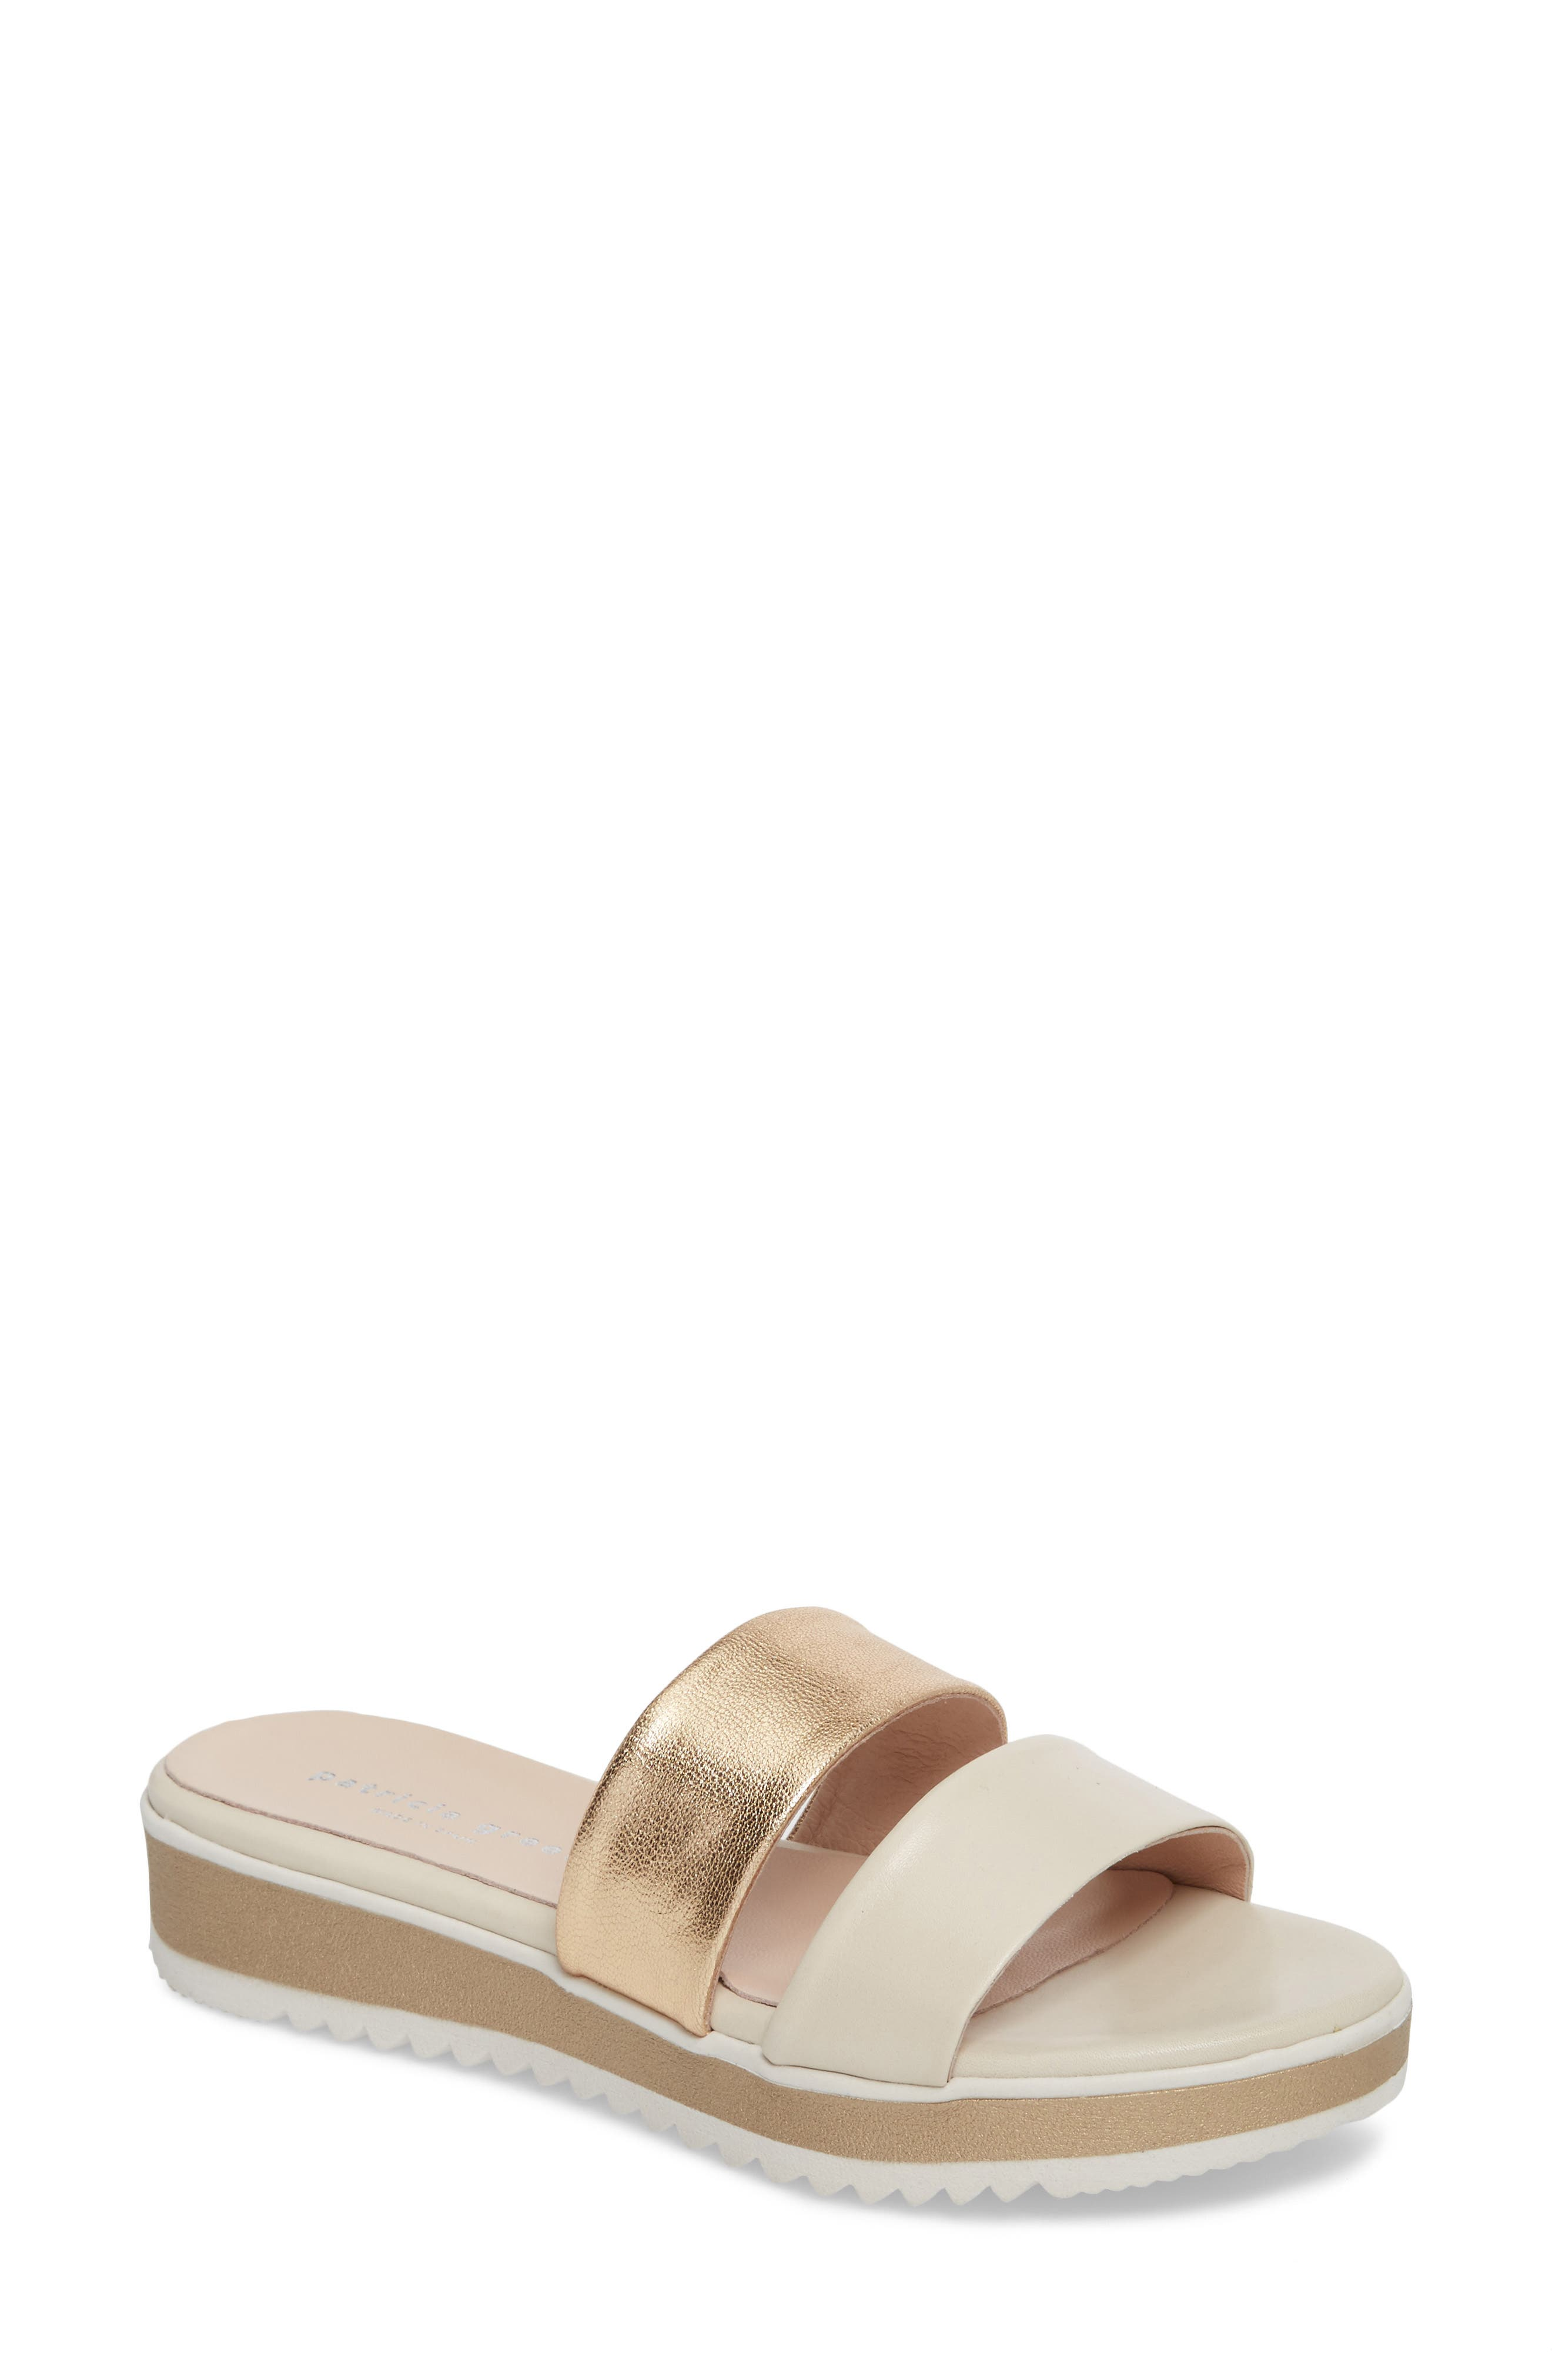 Bailey Slide Sandal,                         Main,                         color, SAND LEATHER